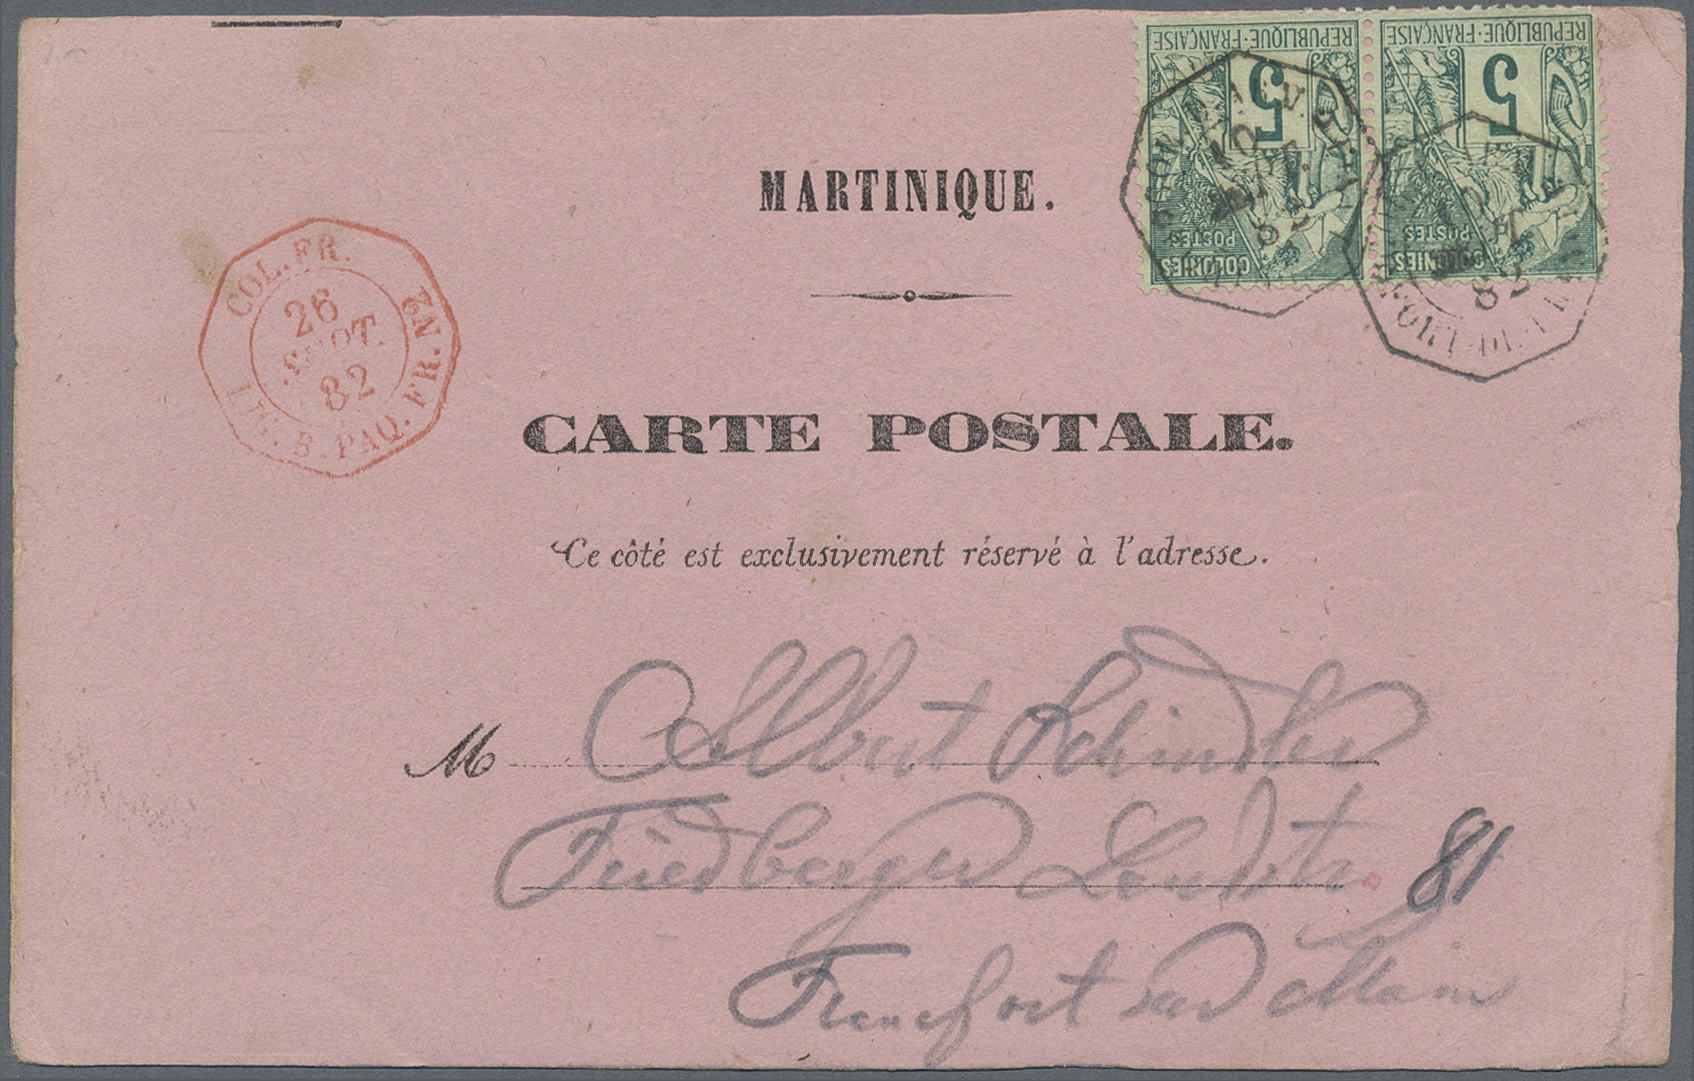 Behr Philatelie Mail Auction 38 Page 8: France Poste Maritime